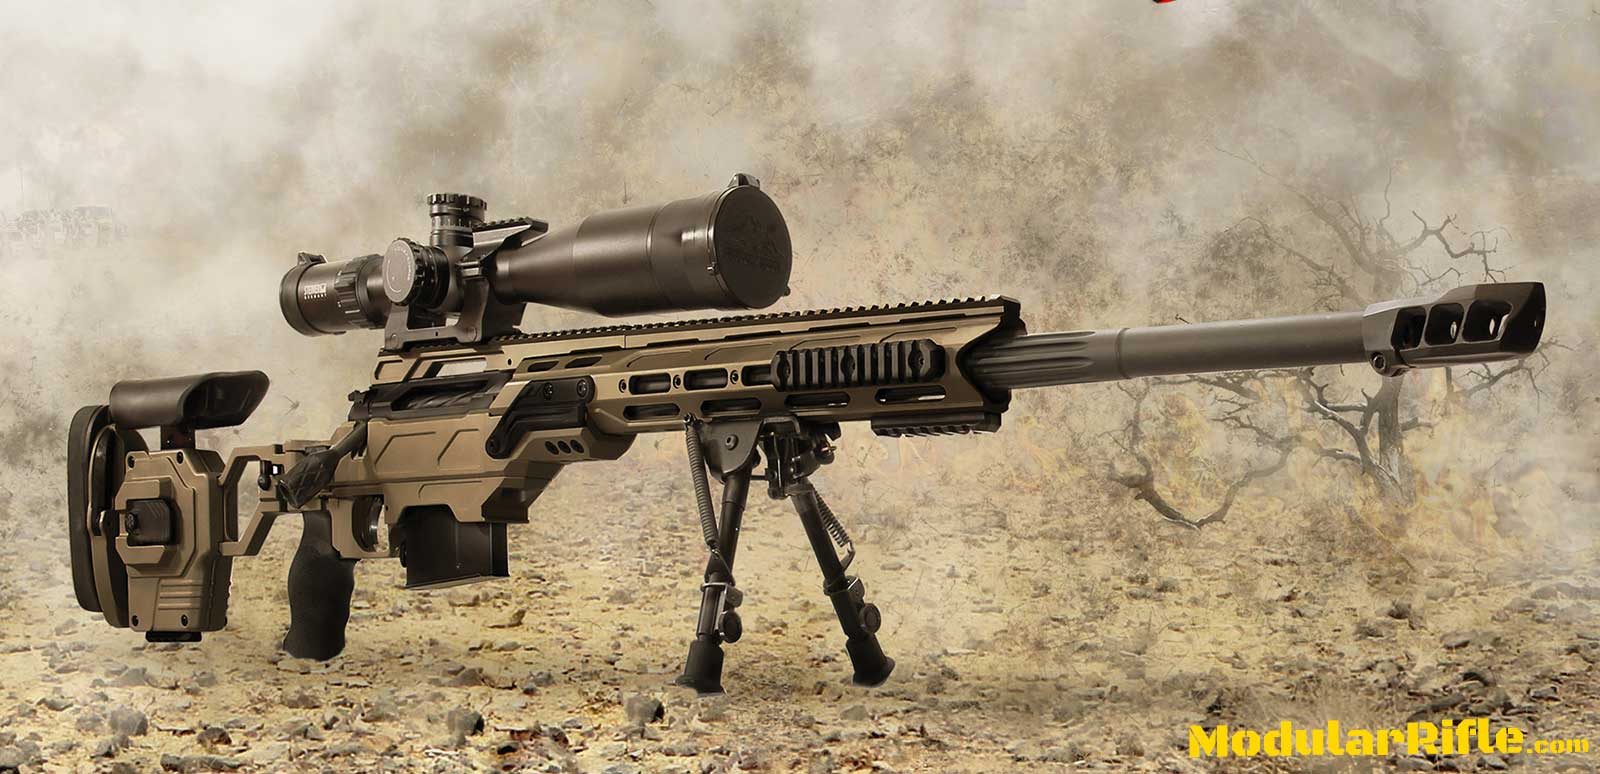 Precision Rifle Chassis System | Remington XM2010 Sniper Rifle | Remington MSR Modular Sniper Rifle